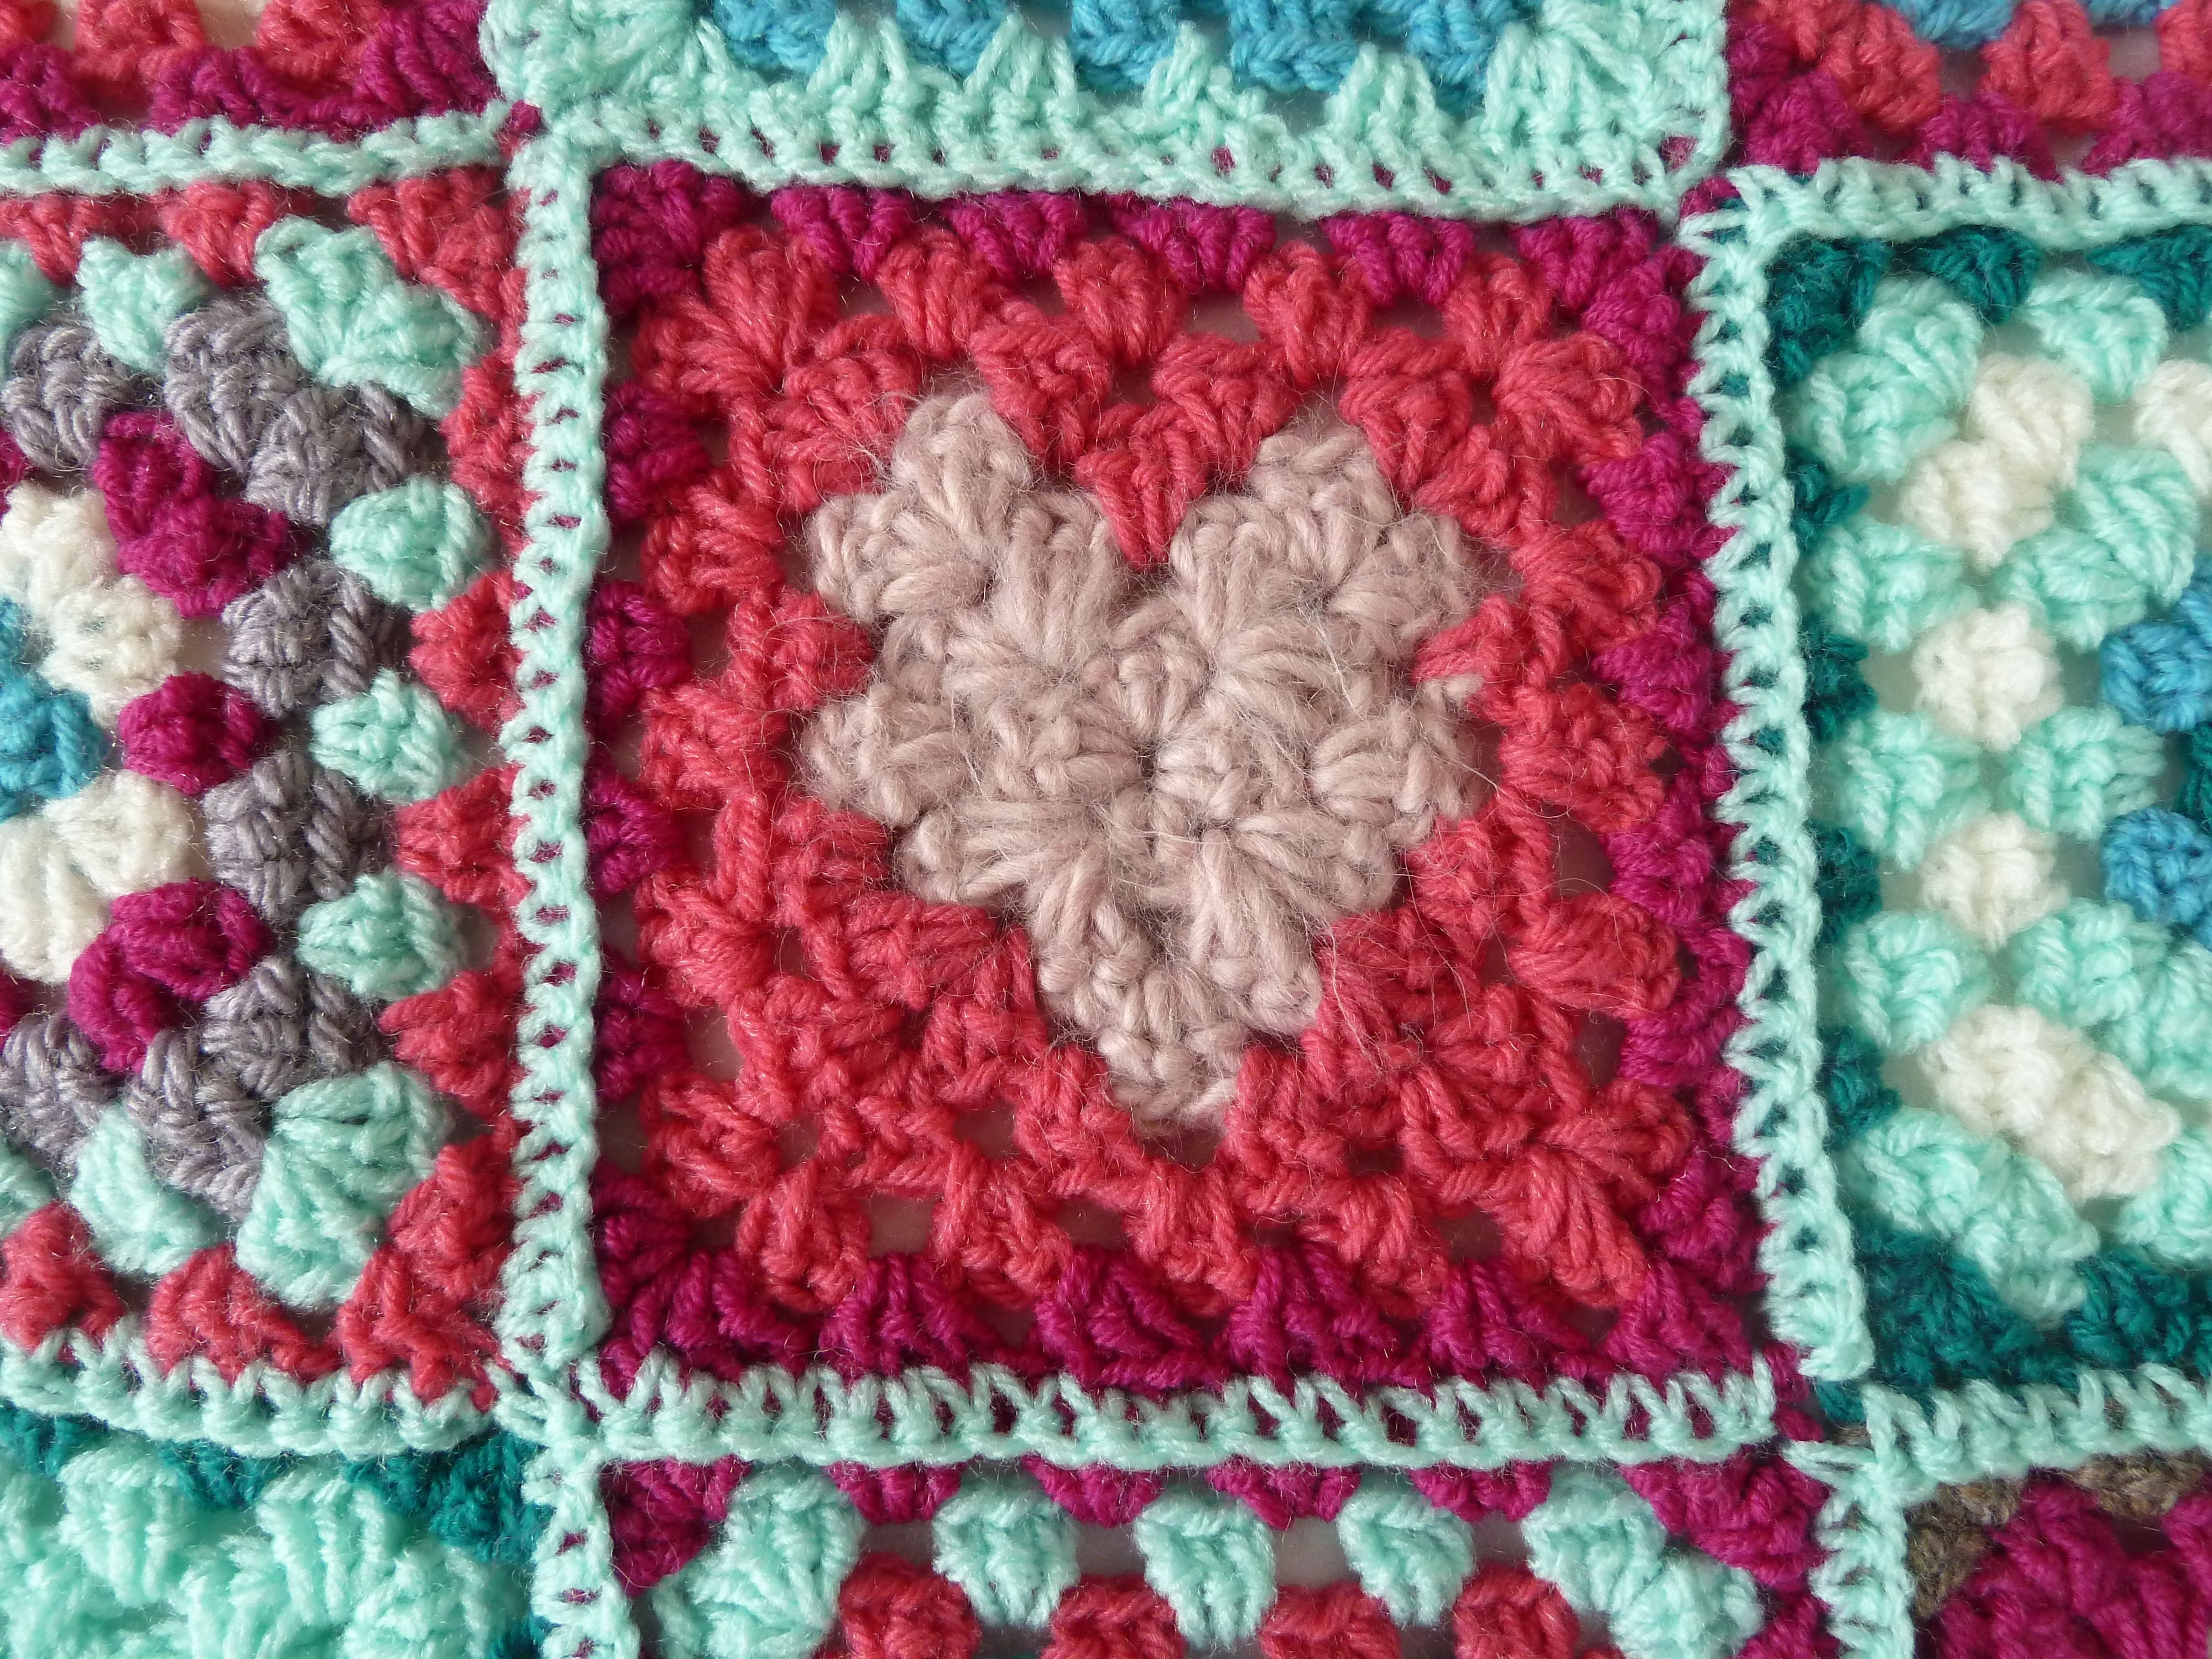 Tutorial matilda the granny square with heart granny squares the granny square with heart free tutorial bankloansurffo Image collections